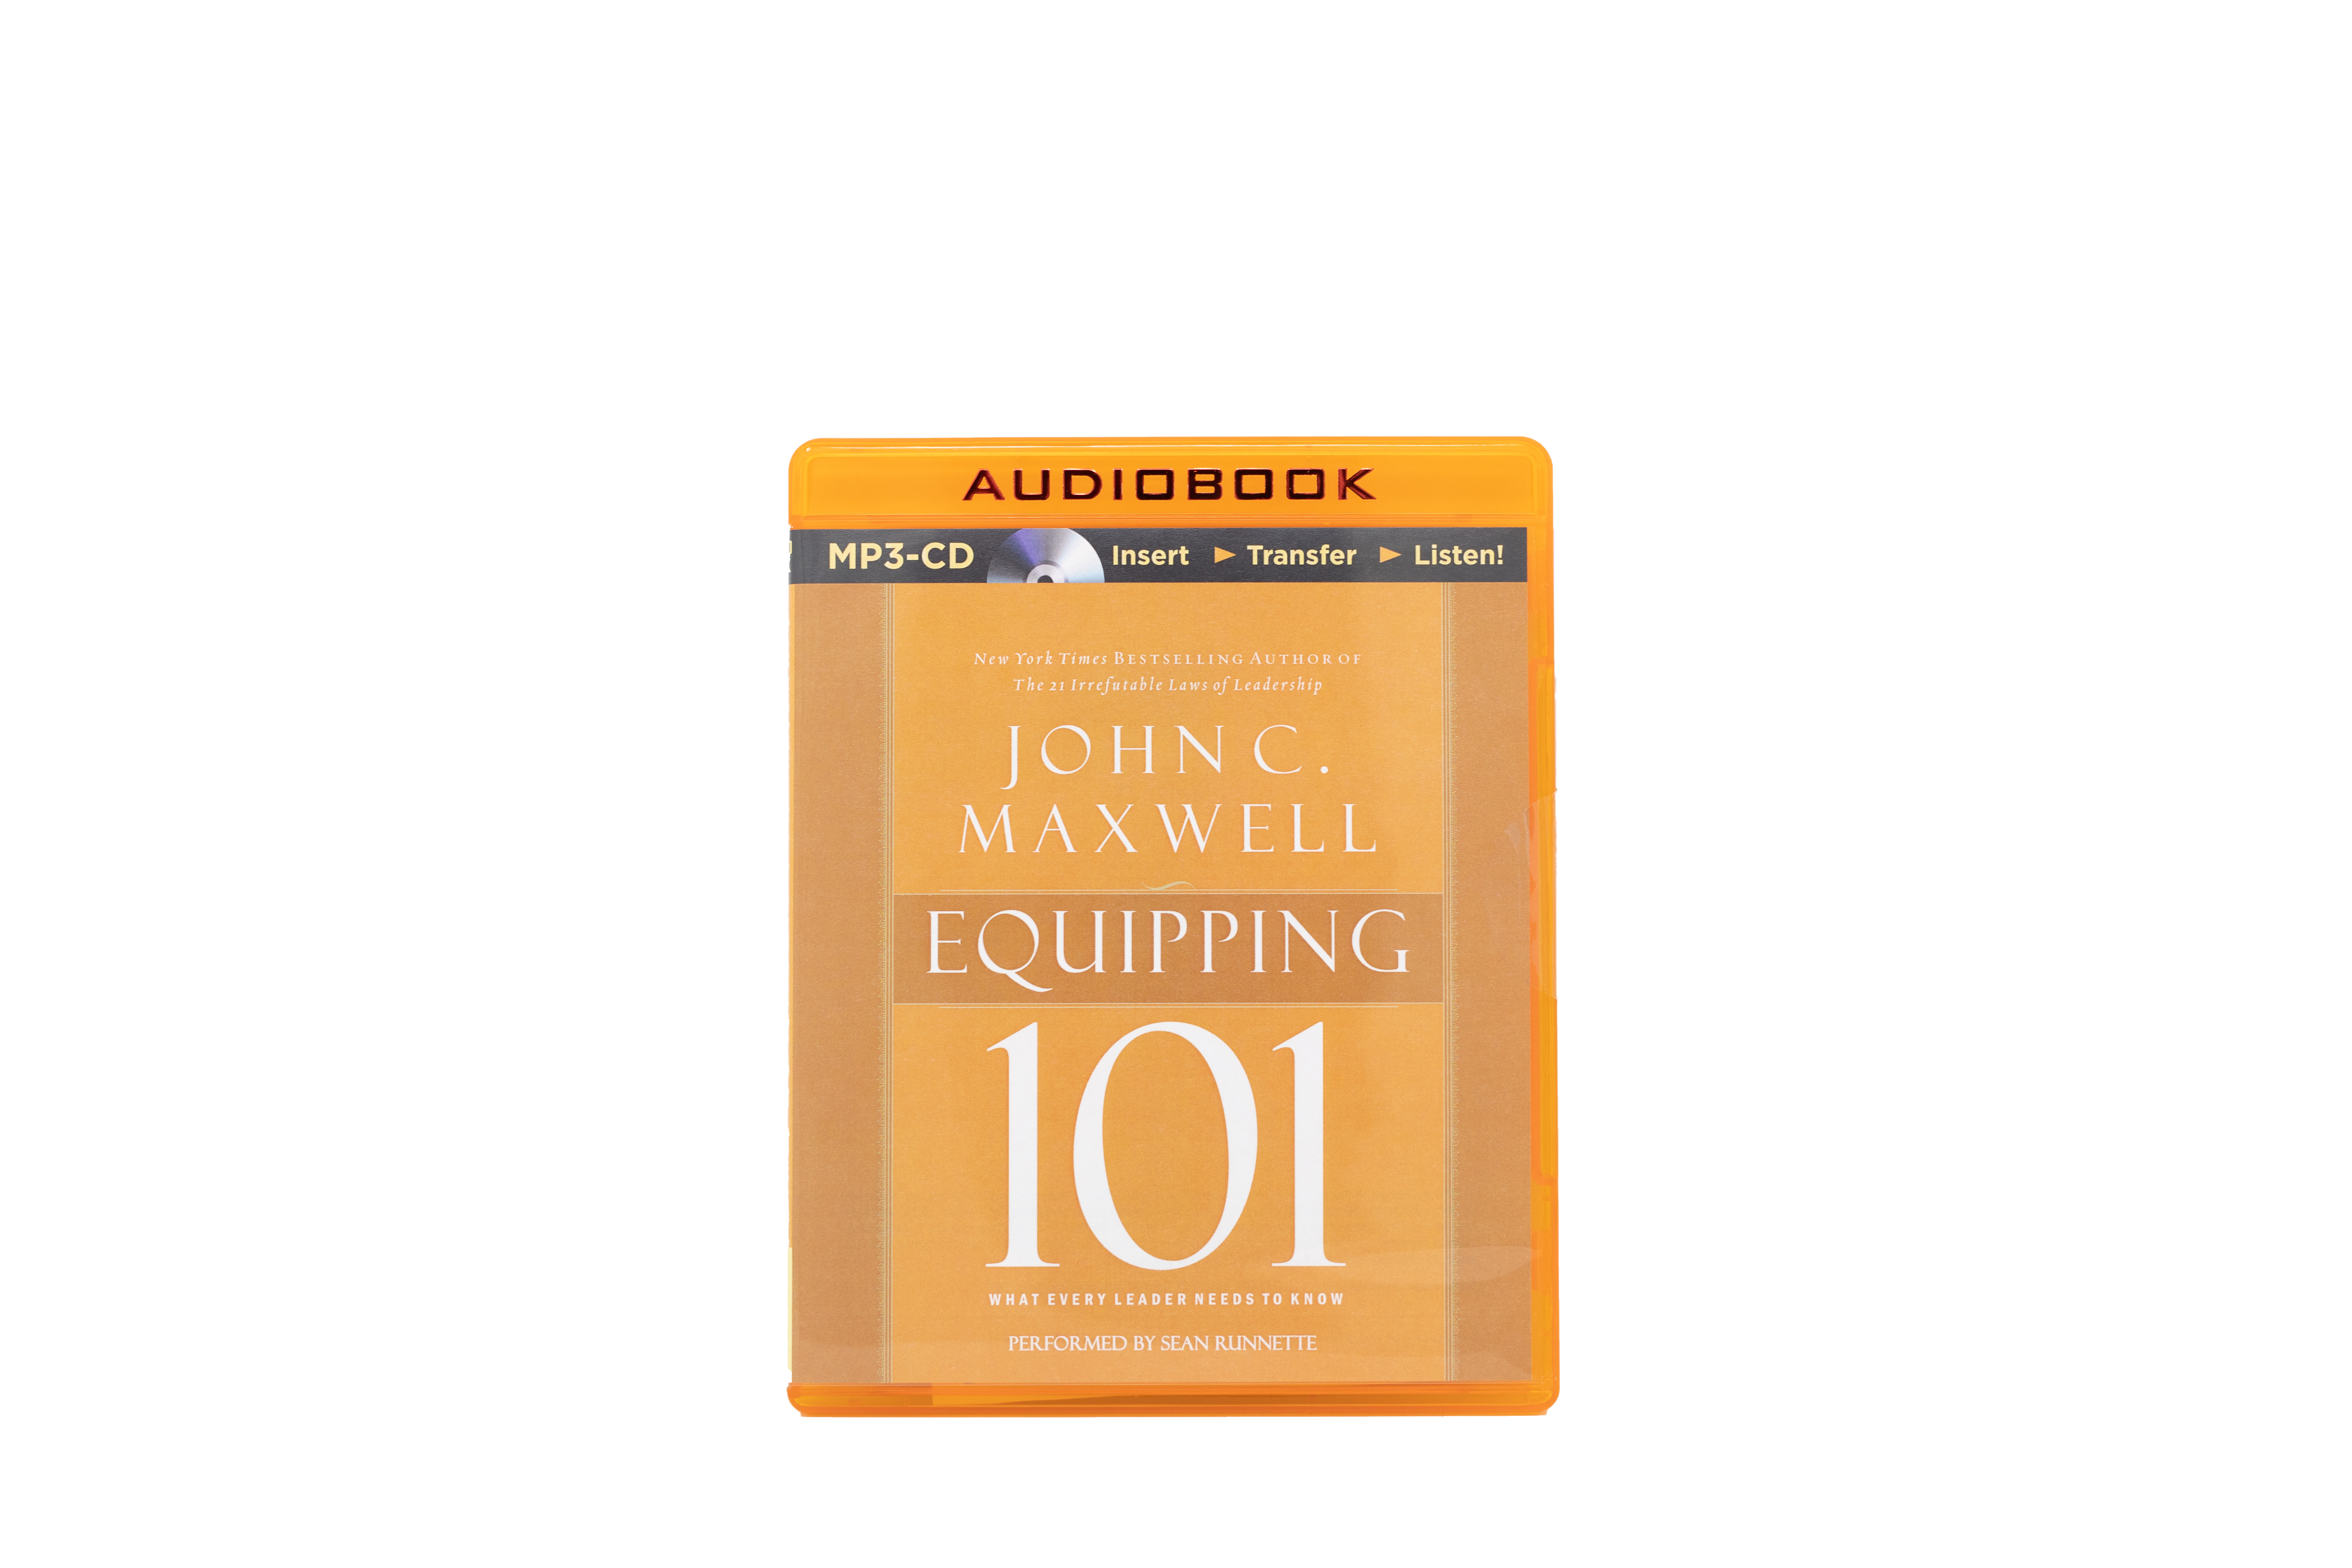 Equipping 101 [MP3-CD]